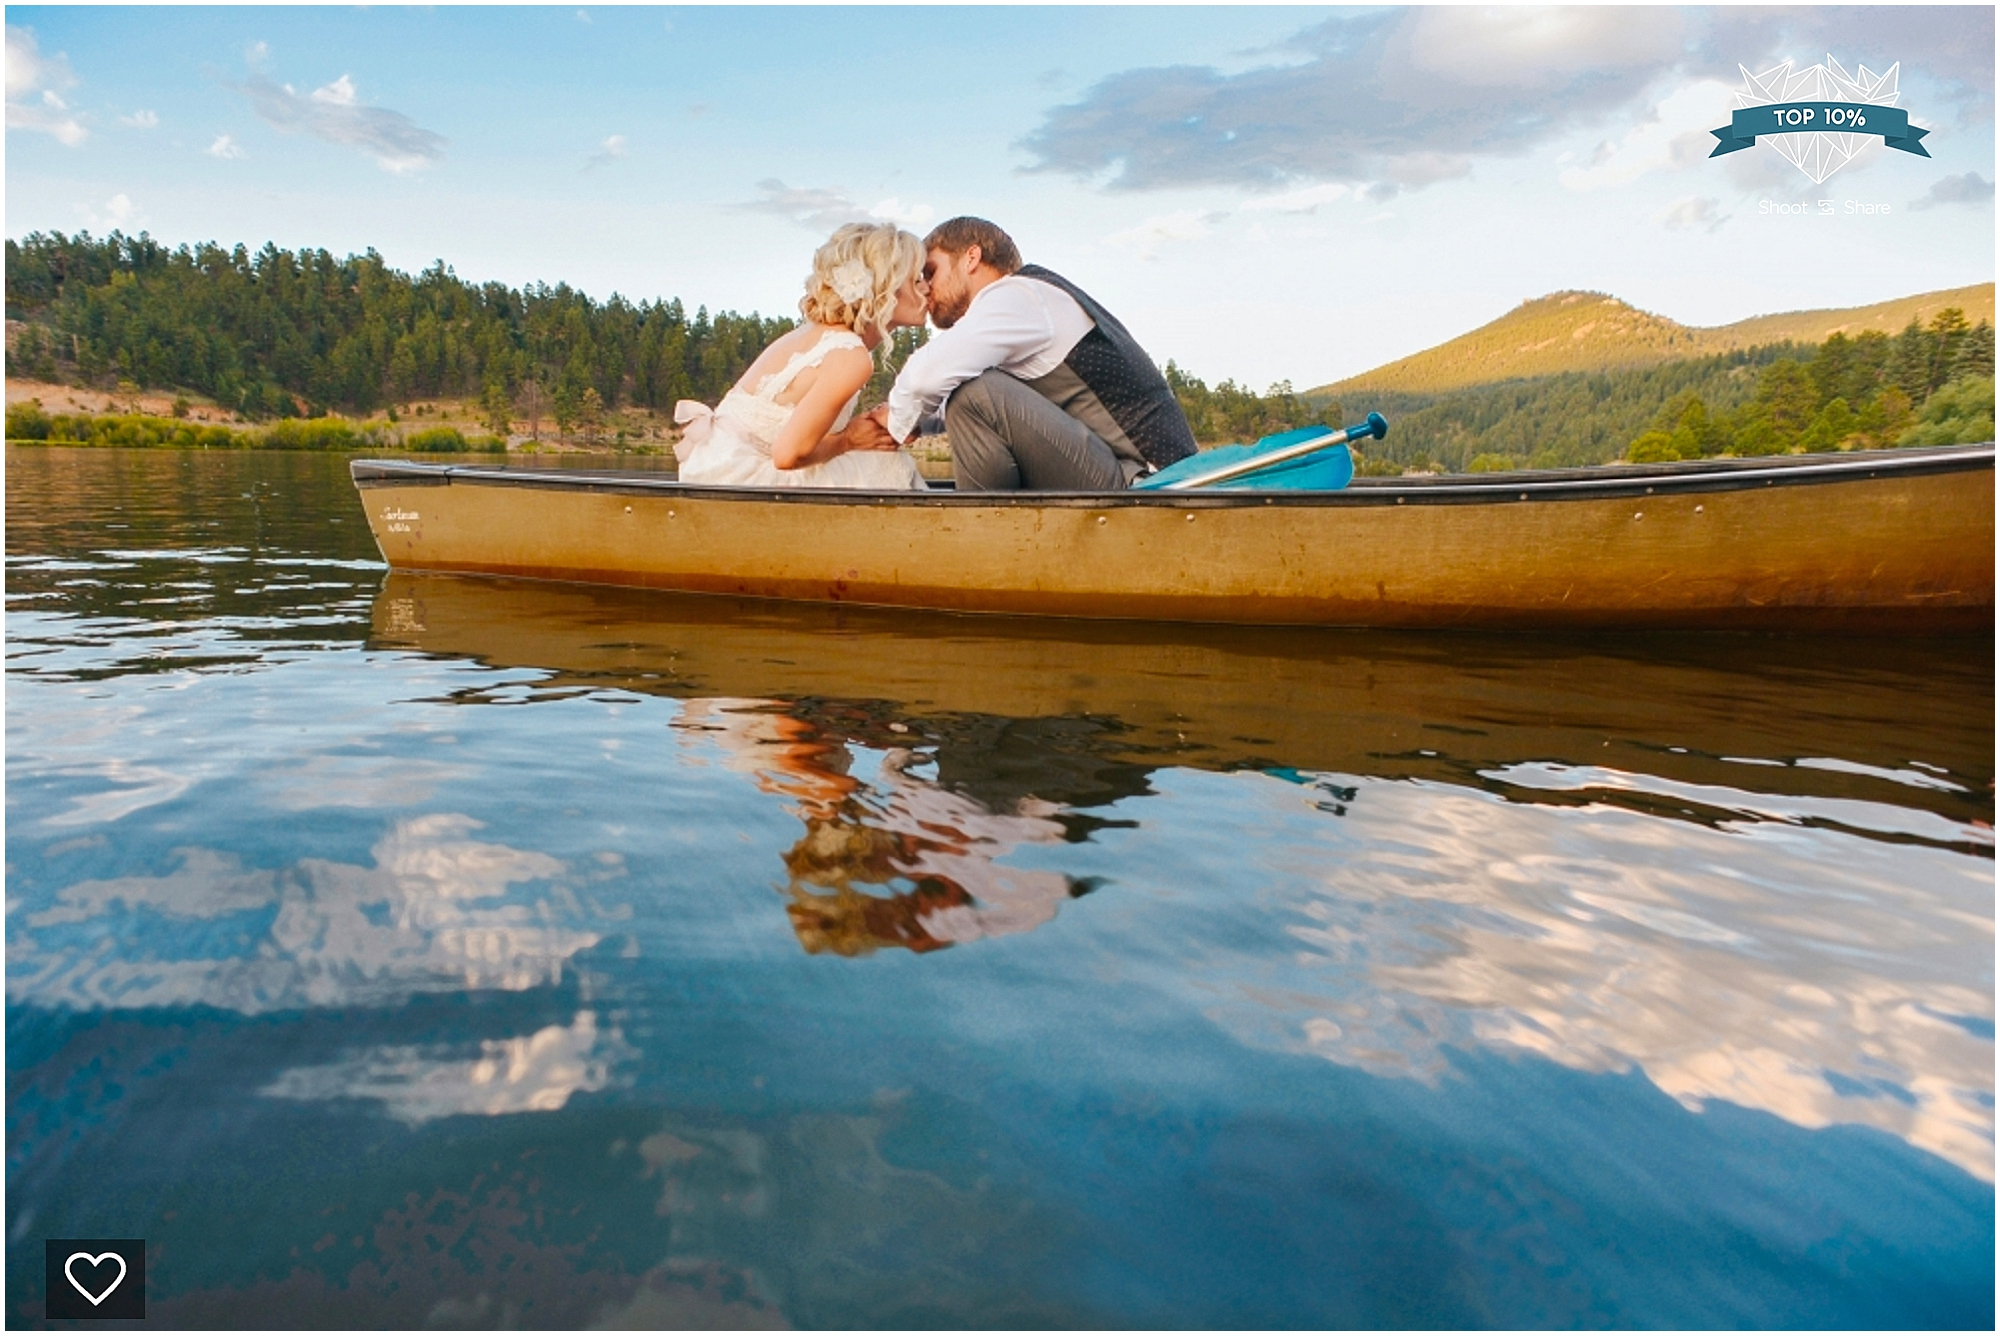 shoot and share, colorado wedding pictures, denver wedding pictures, colorado wedding photographer, couple on a lake, couple in a boat, wedding on a lake